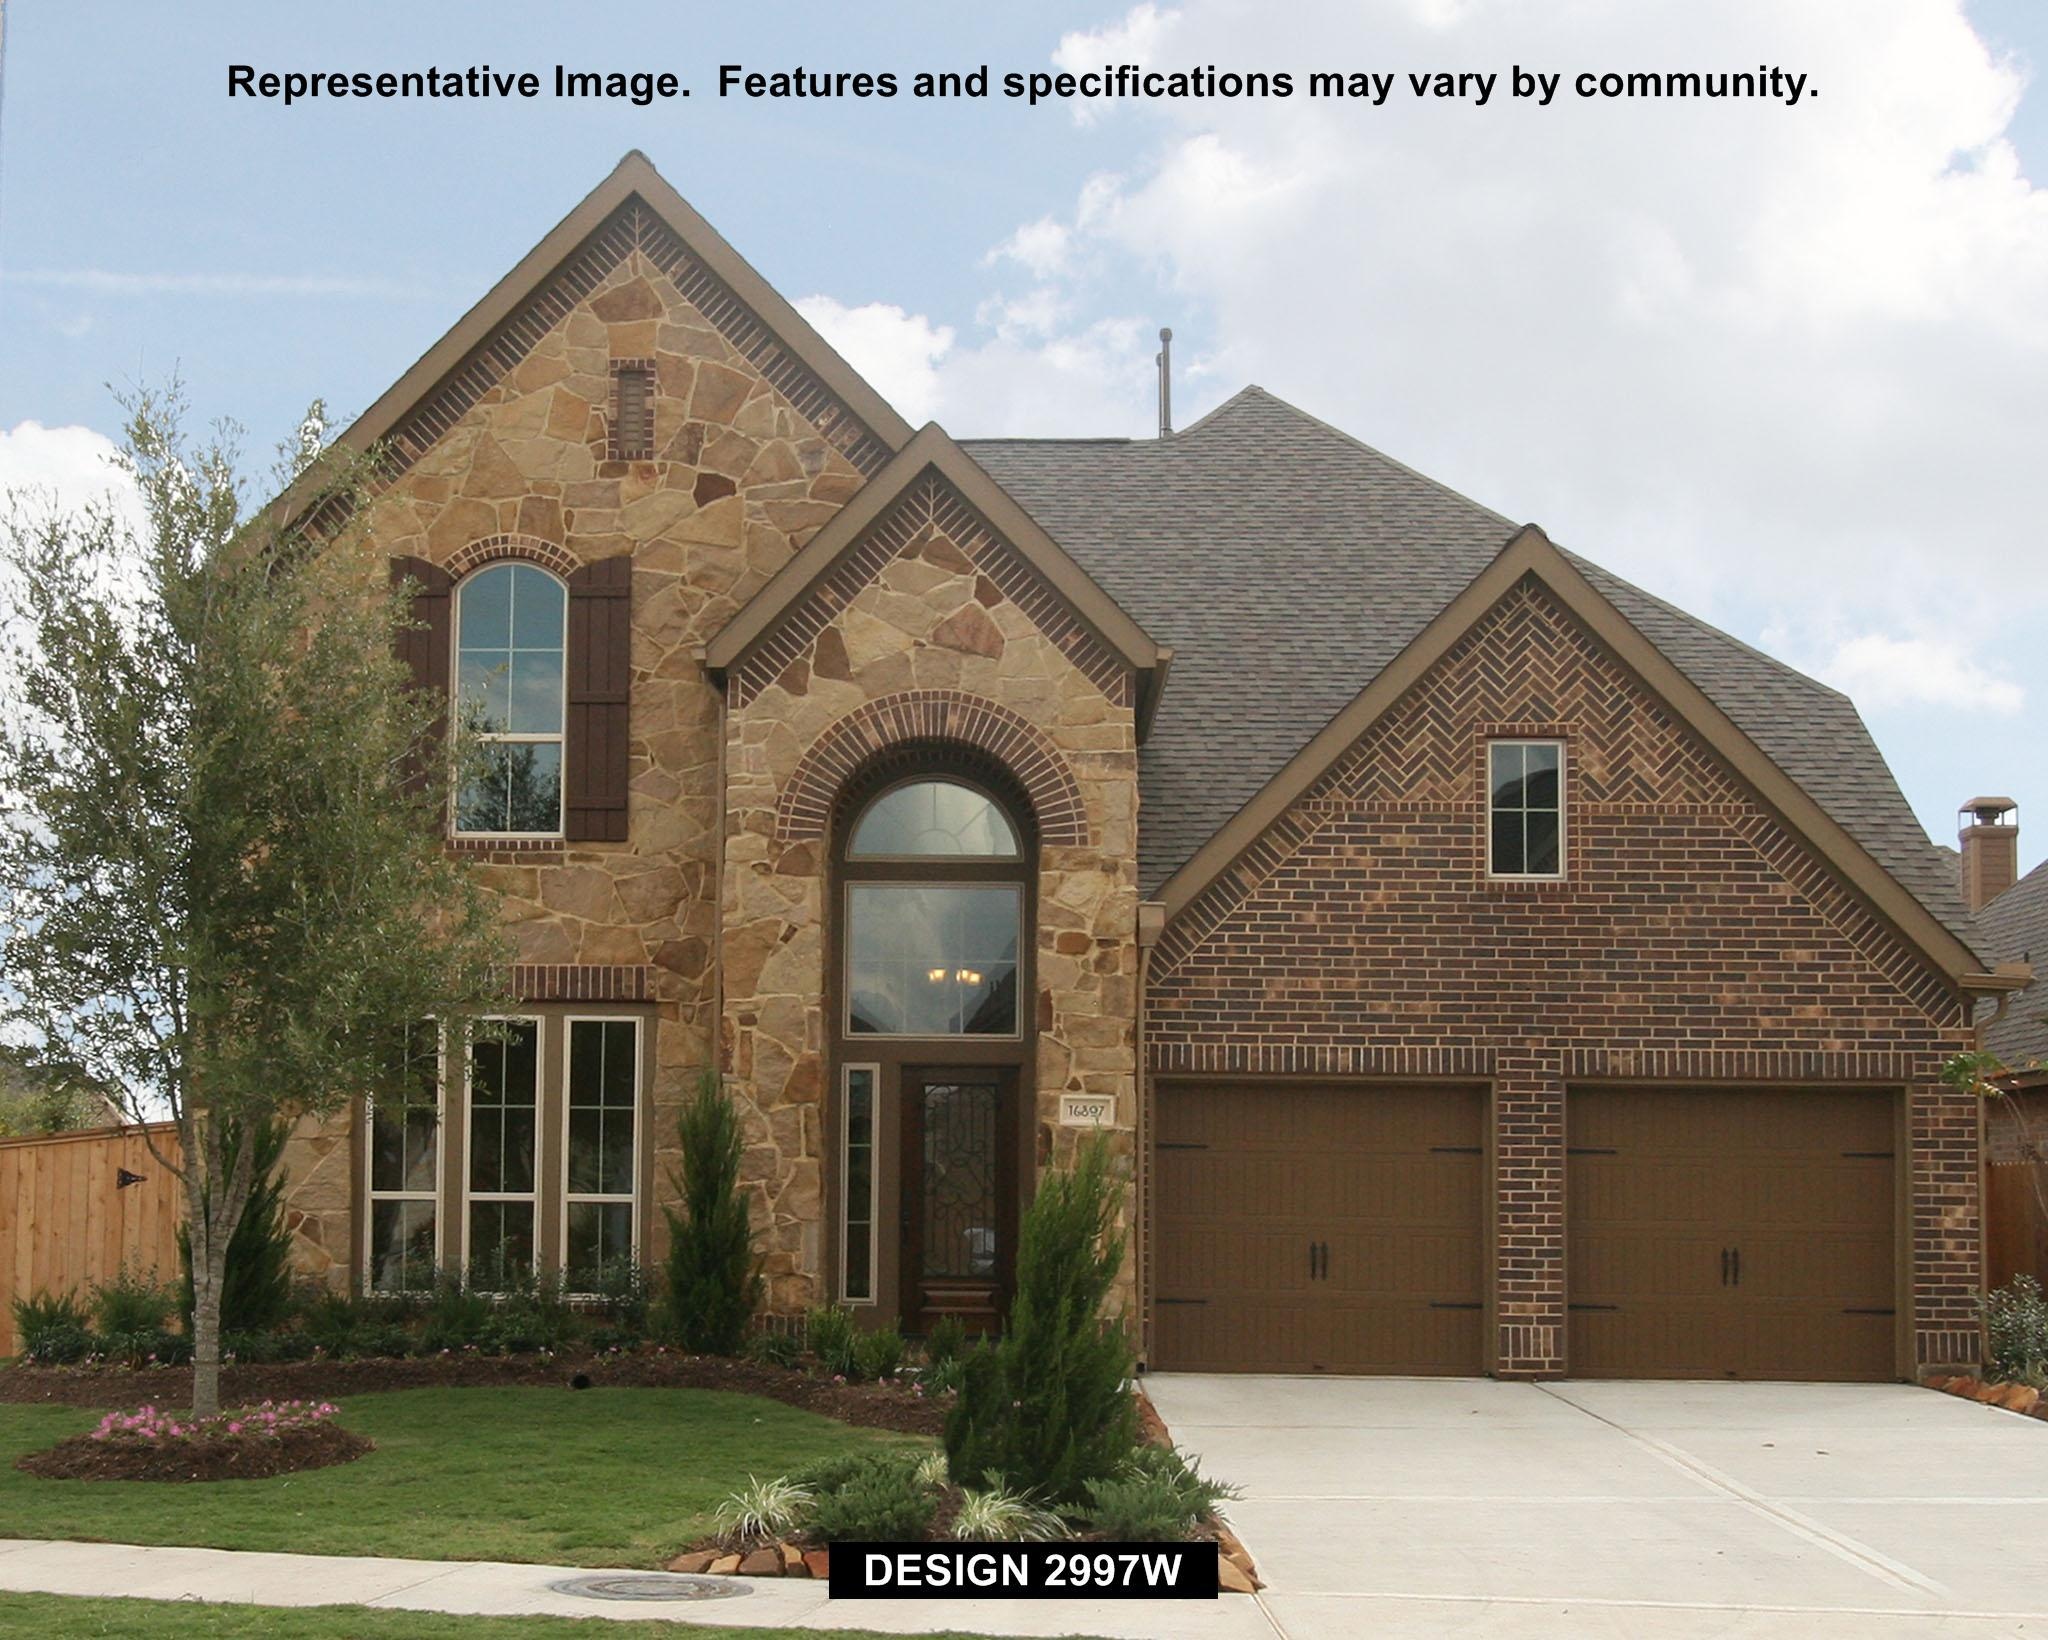 2997W - Firethorne: Firethorne 60': Katy, TX - Perry Homes